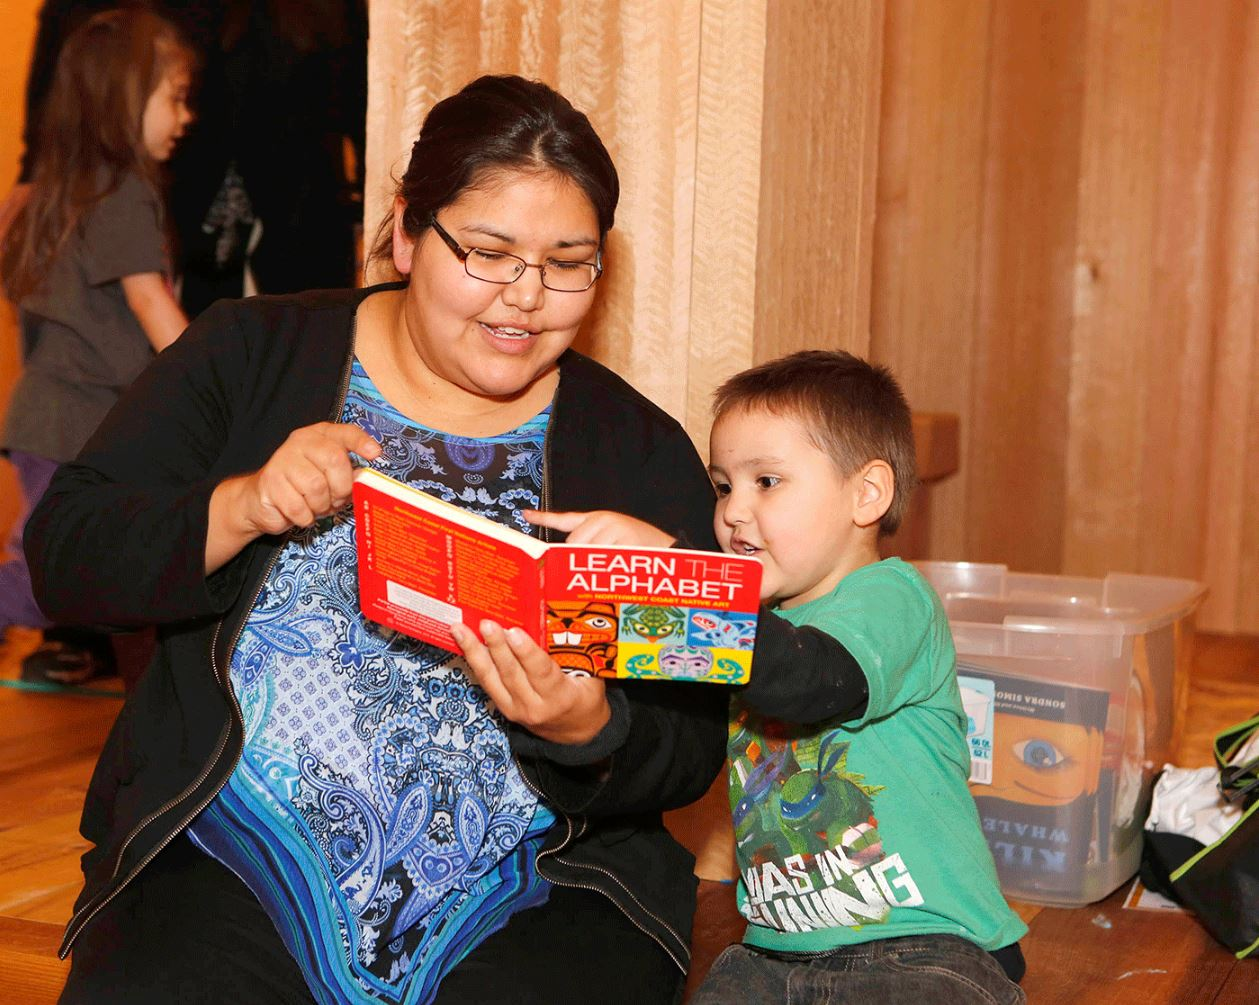 (Photo by Brian Wallace/Courtesy Sealaska Heritage Institute)